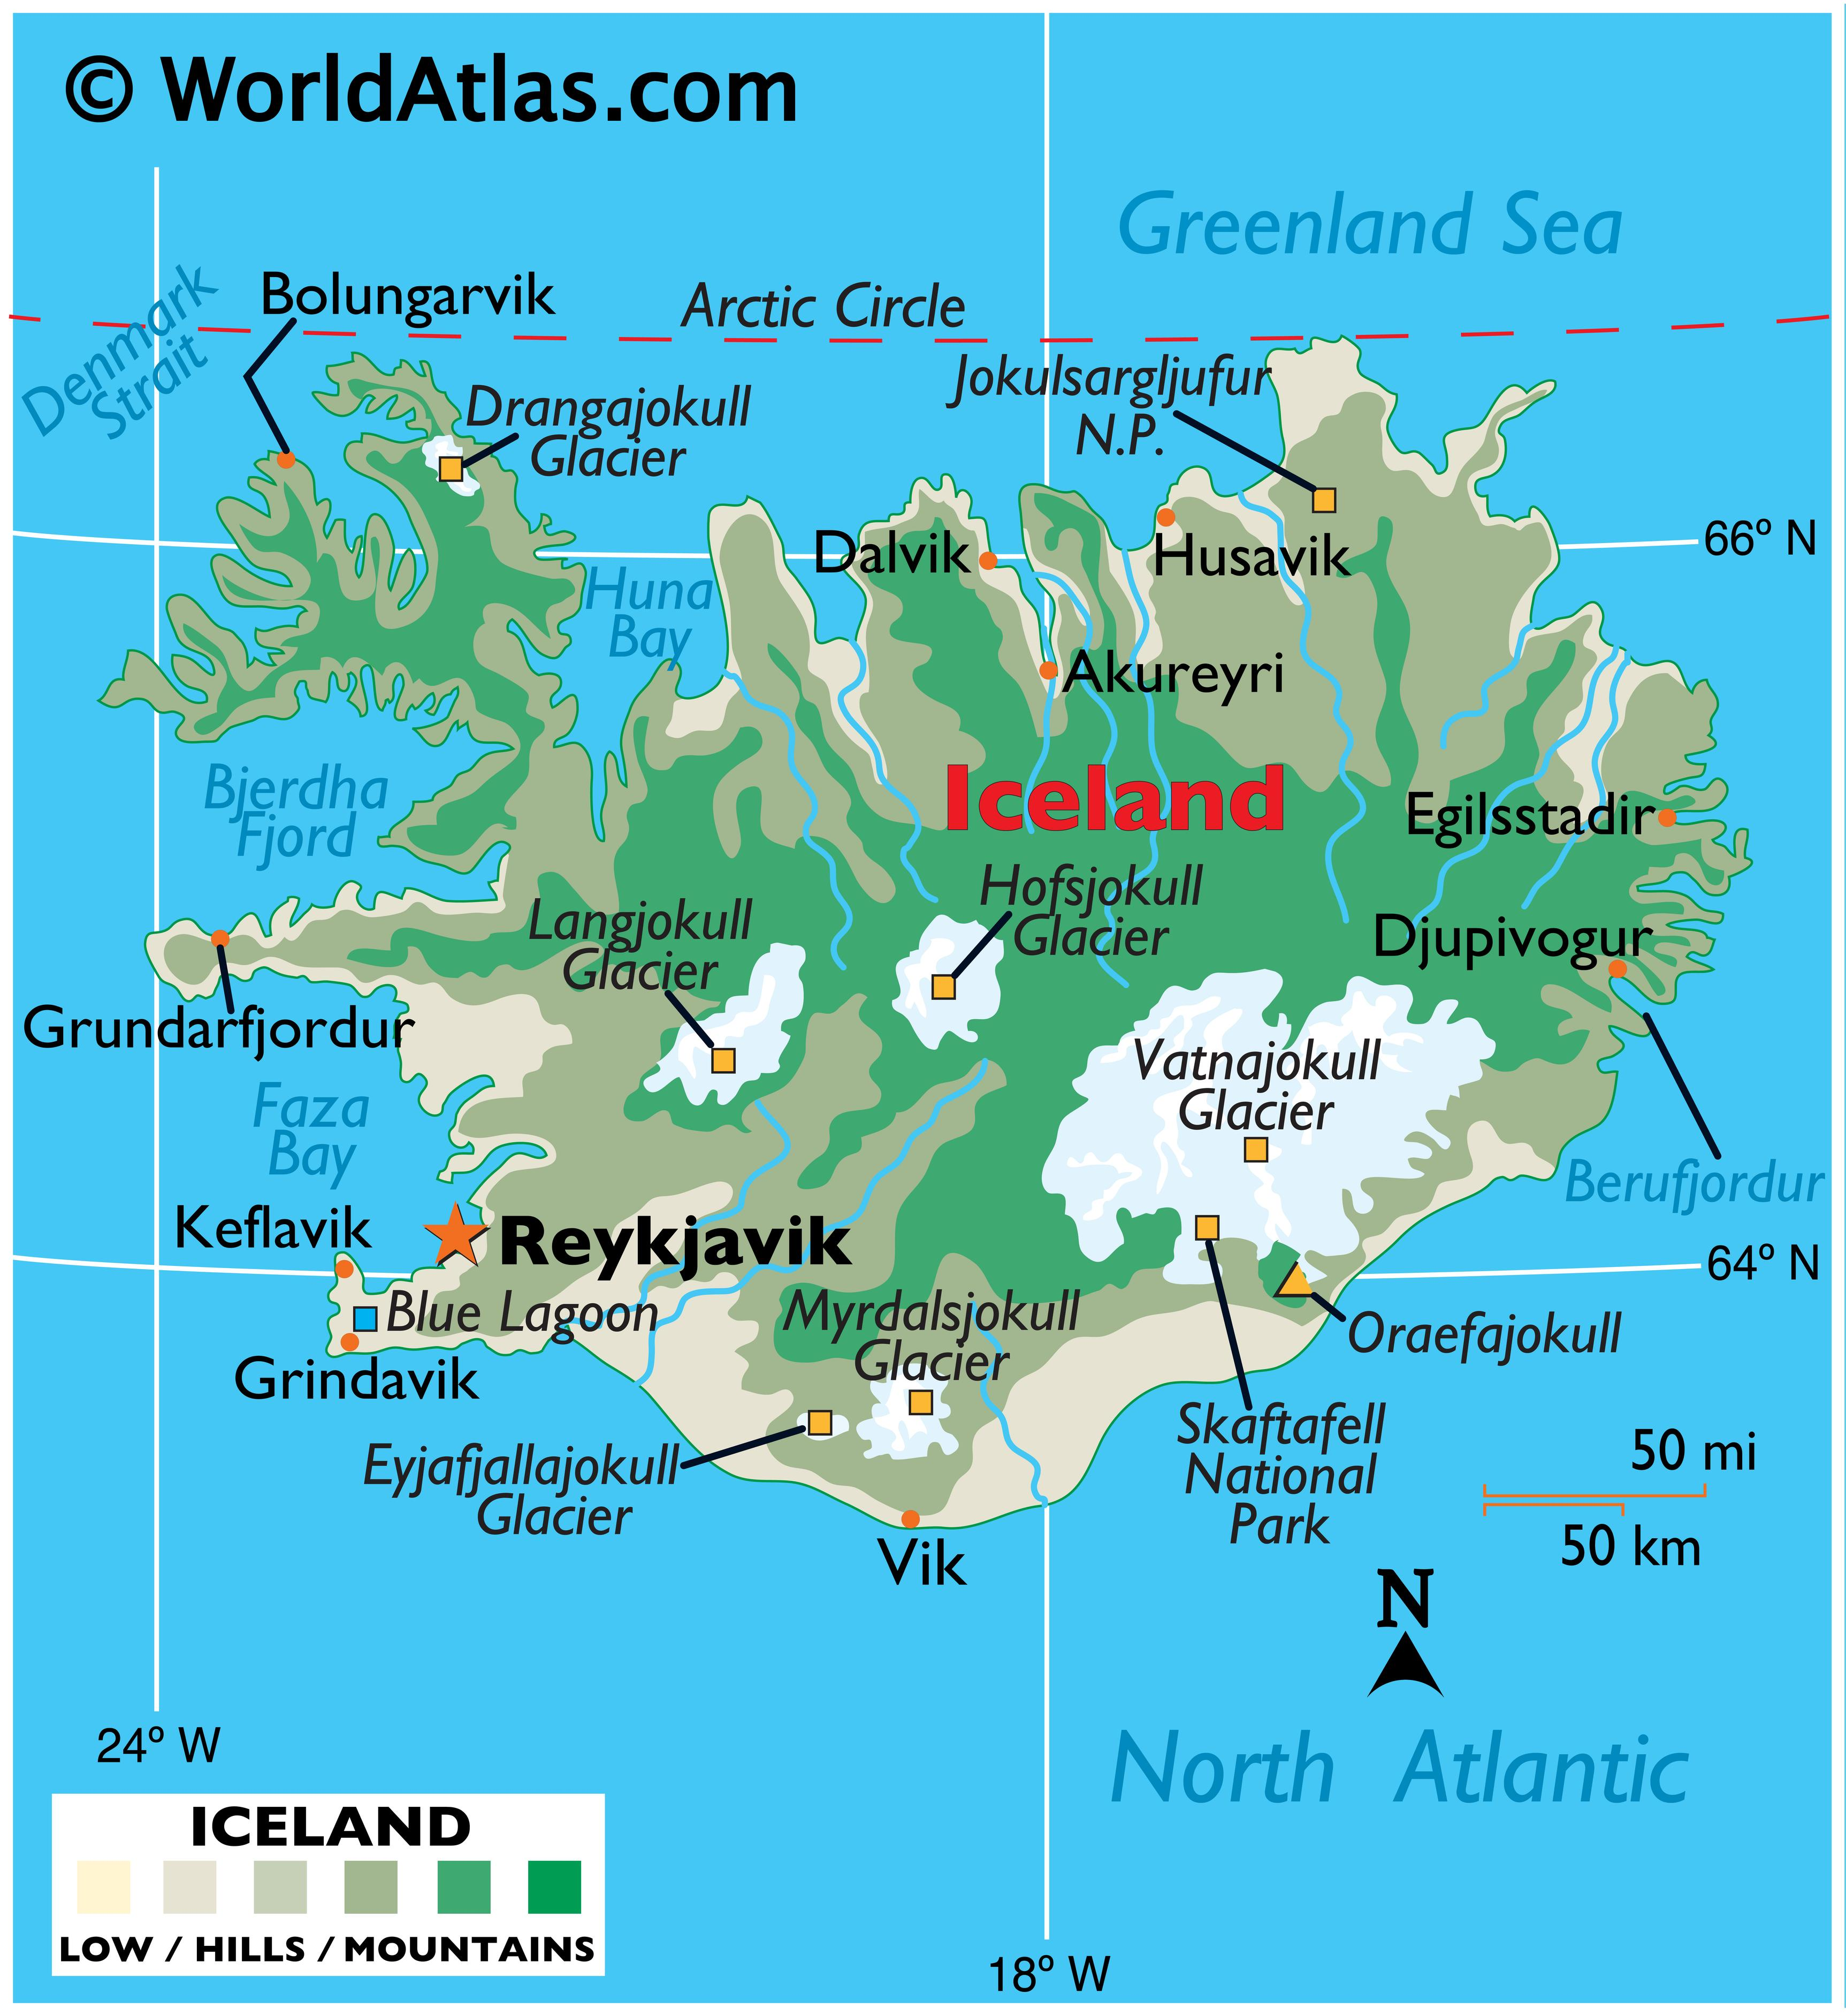 Physical Map of Iceland showing terrain, mountains, extreme points, glaciers, fjords, bays, etc.